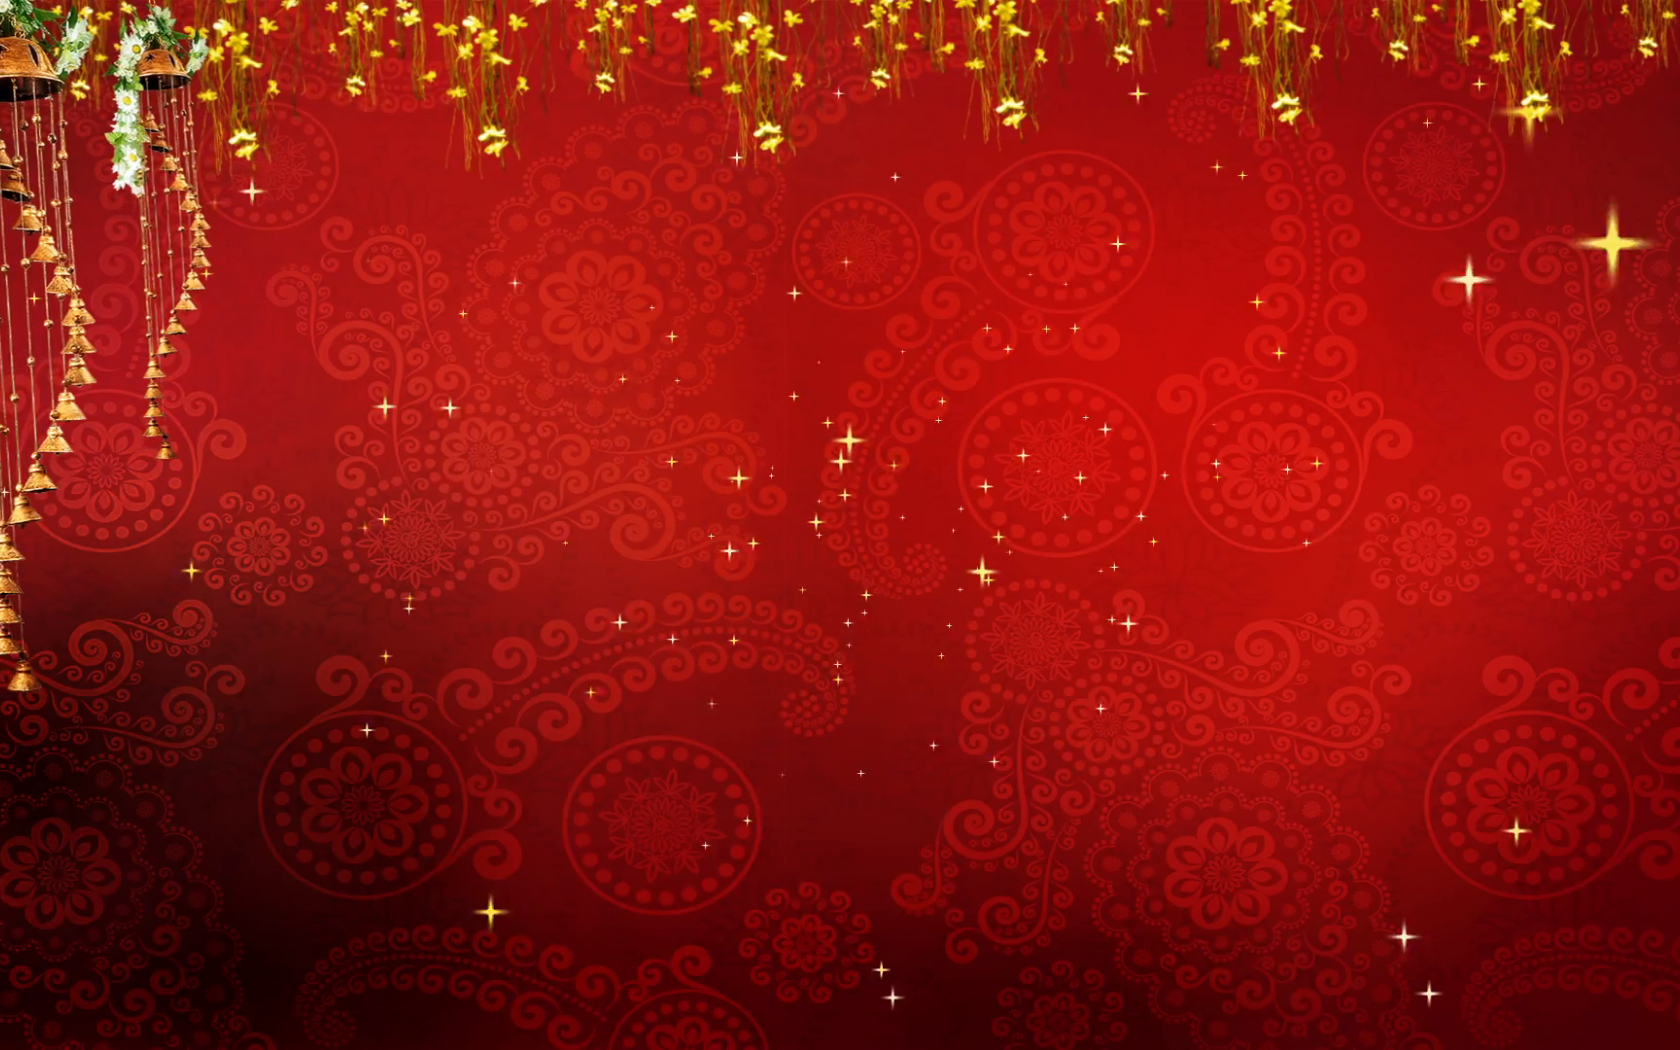 Free Download Abstract Festive Holiday Background 03 Stock Video Footage 1920x1080 For Your Desktop Mobile Tablet Explore 41 Holiday Background Pictures Holiday Wallpaper Free Holiday Wallpaper Free Holiday Desktop Wallpaper